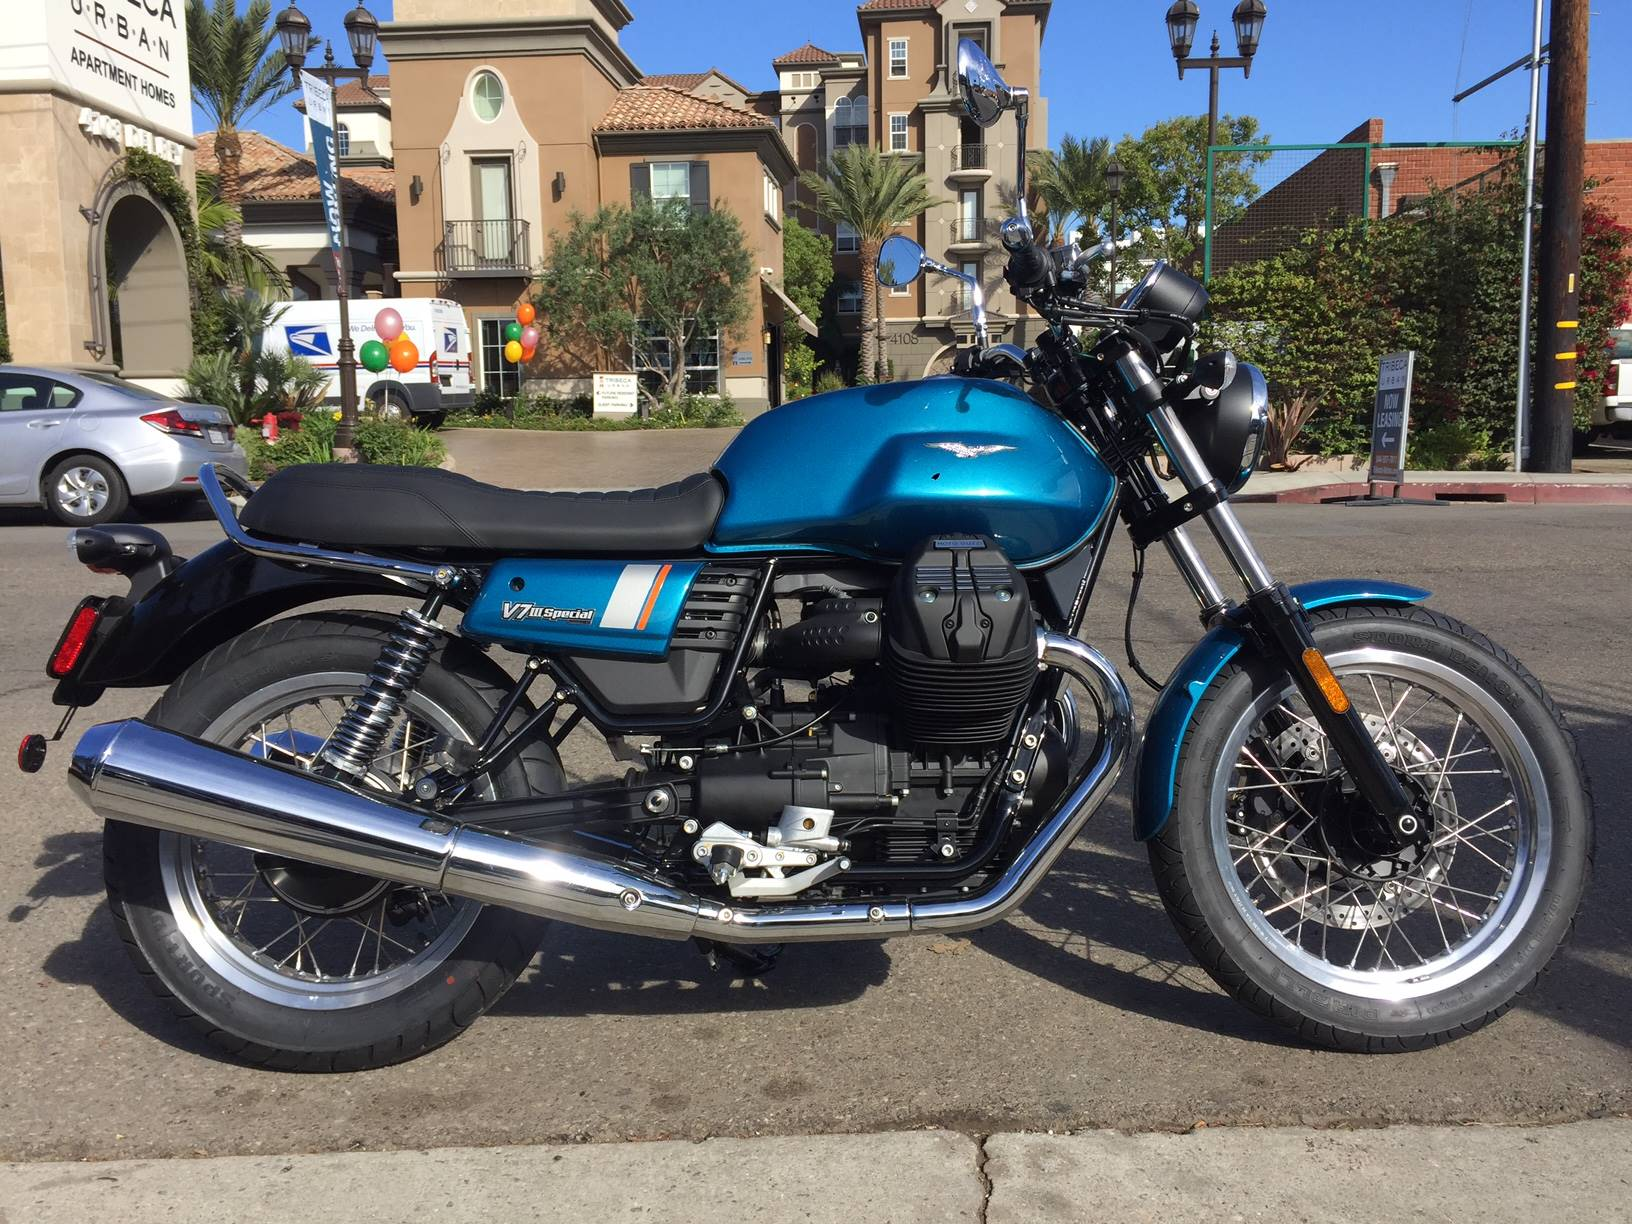 2018 Moto Guzzi V7 III Special ABS for sale 4655